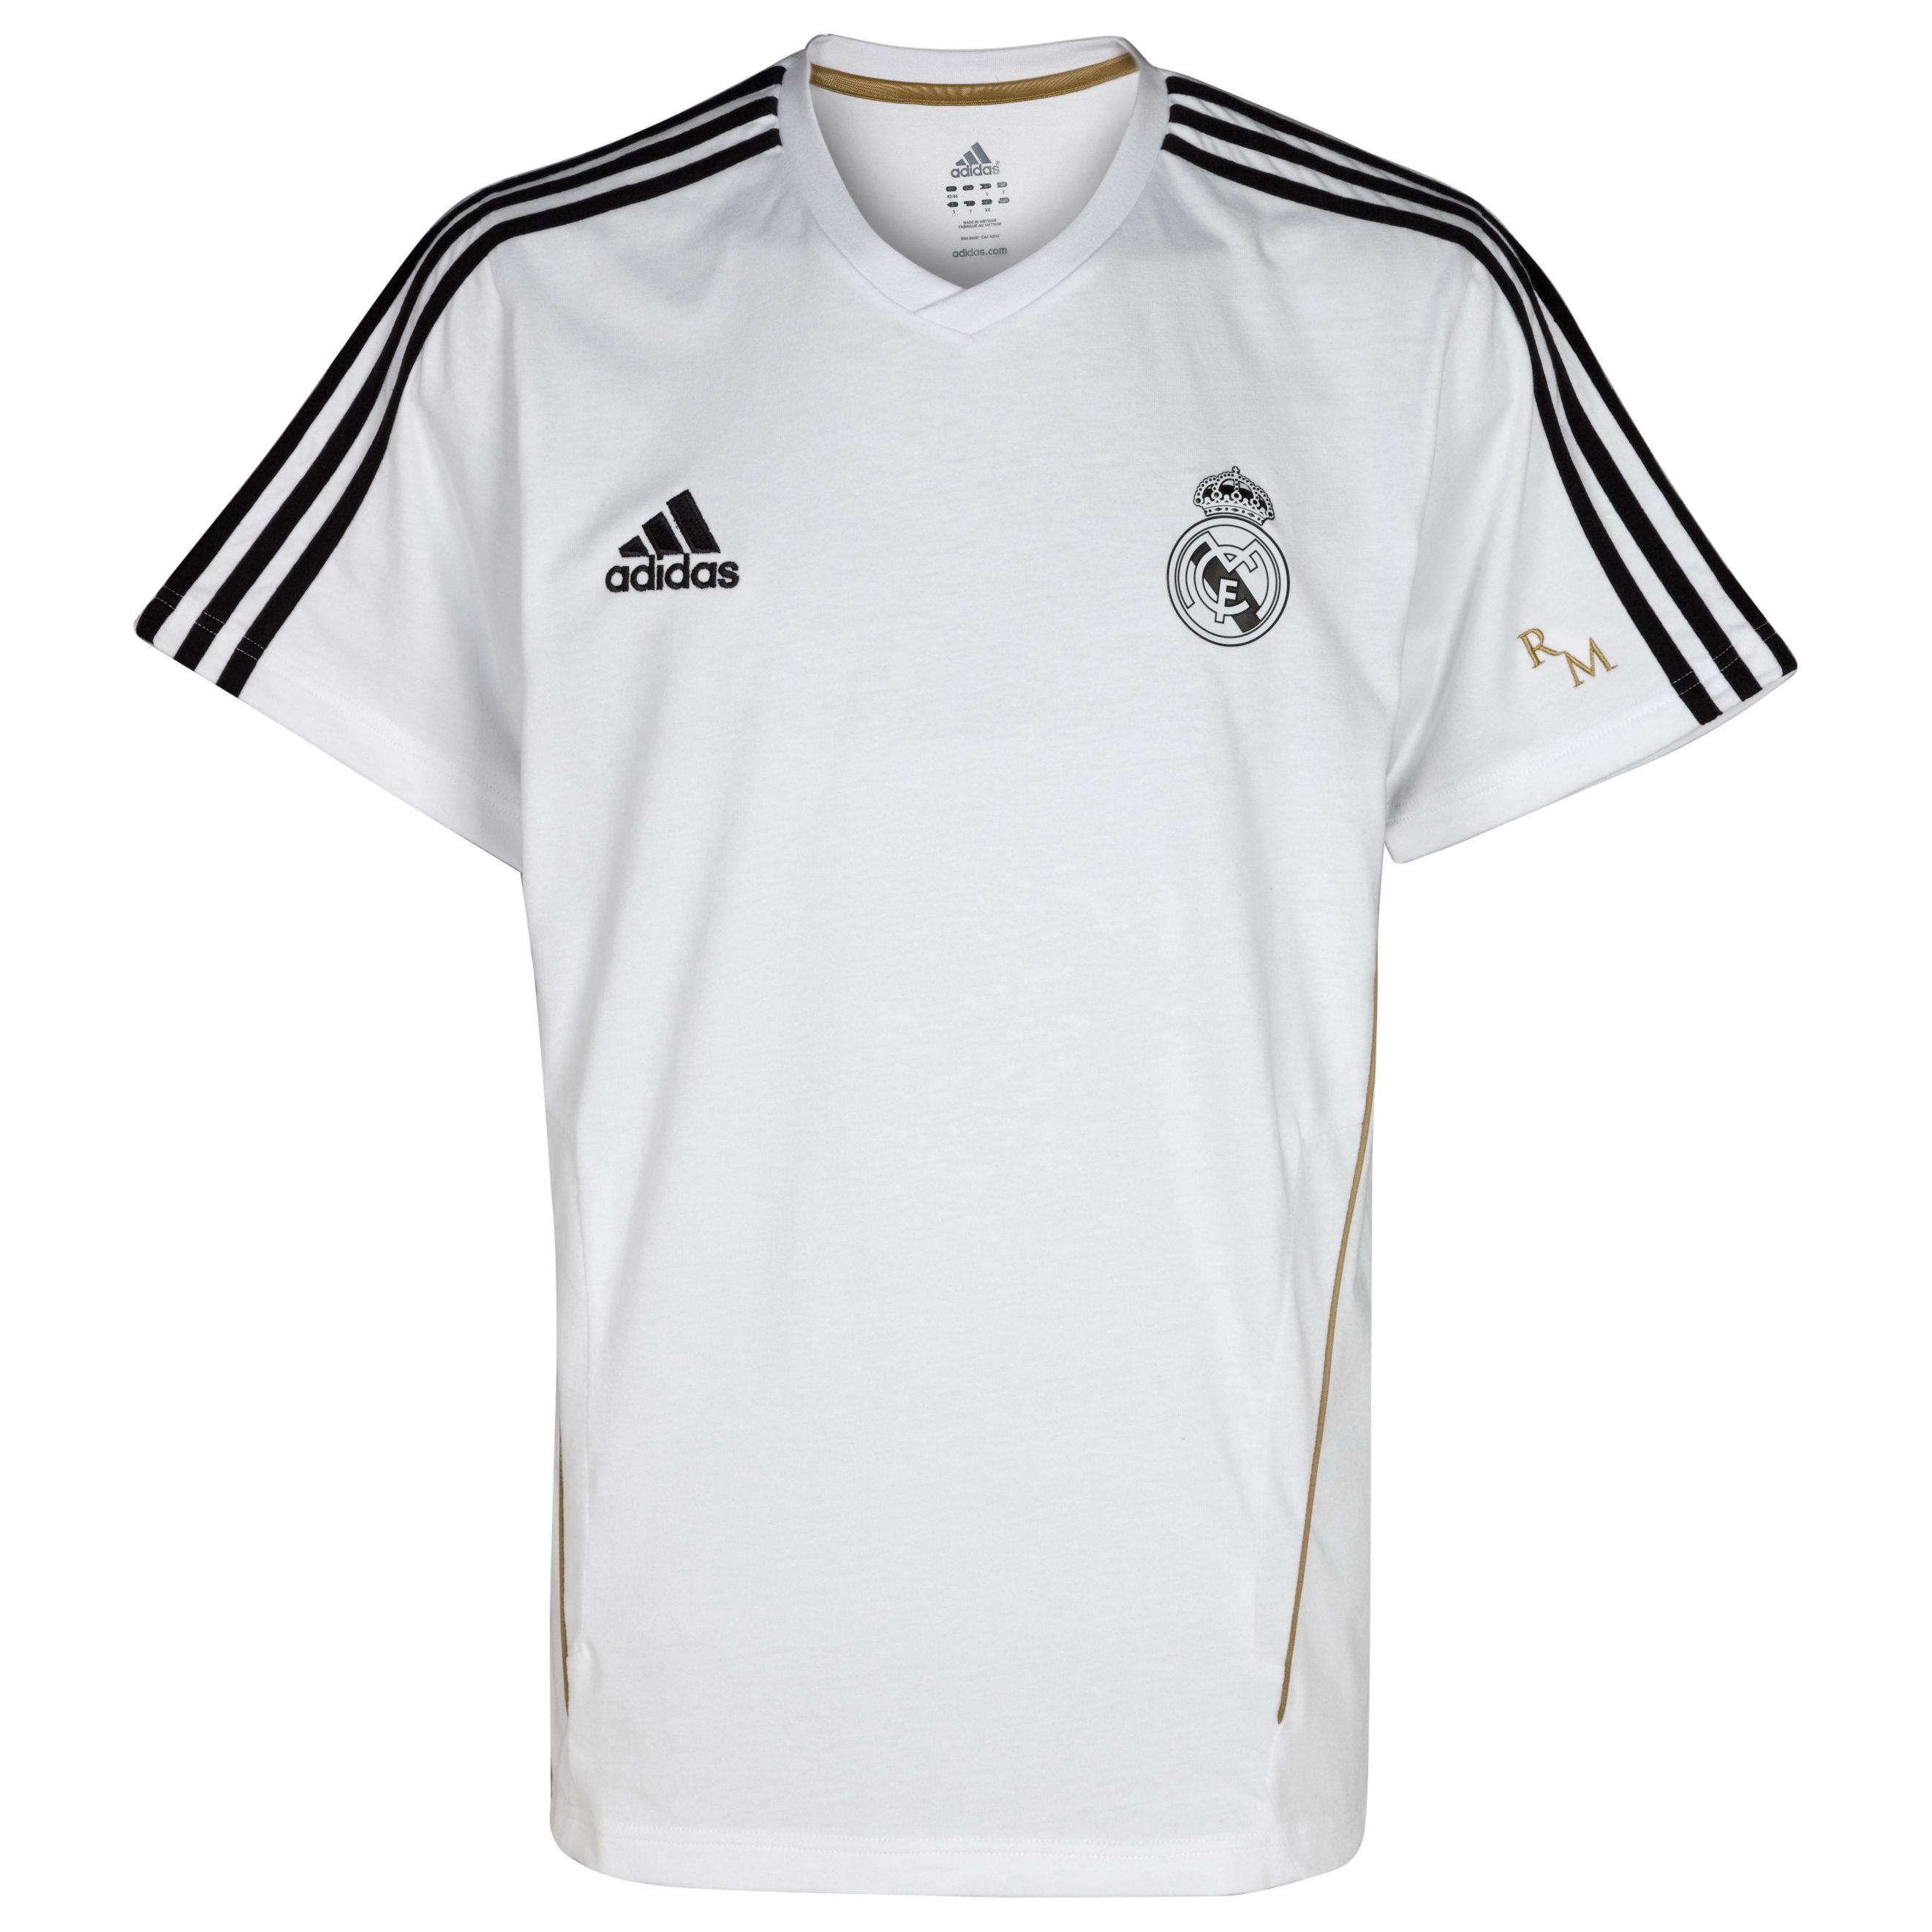 Real Madrid Training T-Shirt - White/Black